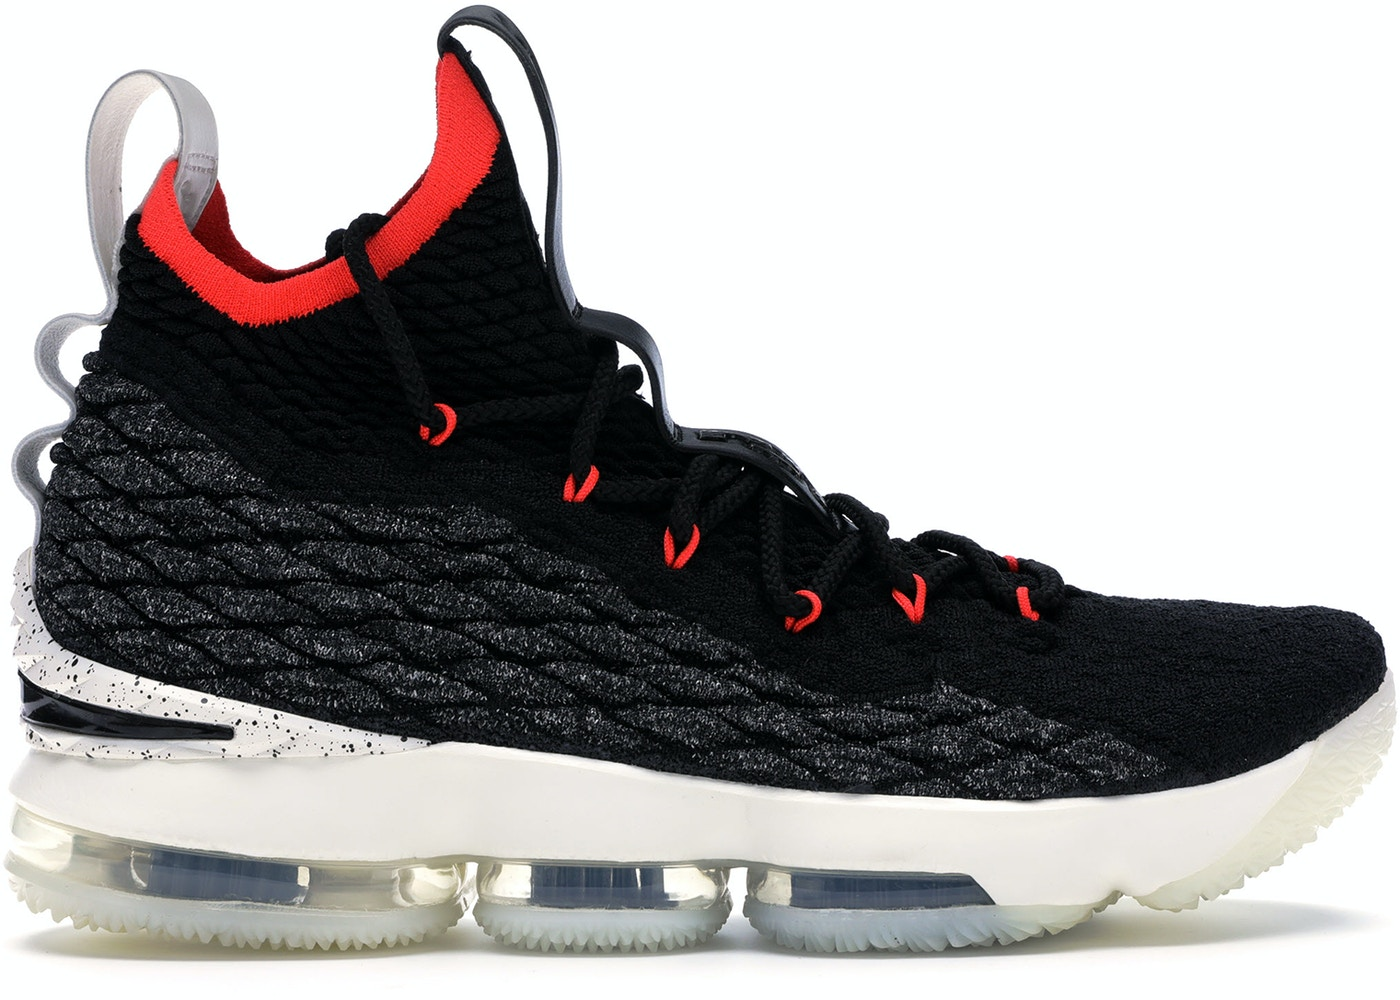 sale retailer 9e033 e7dfd Buy Nike LeBron 15 Shoes & Deadstock Sneakers